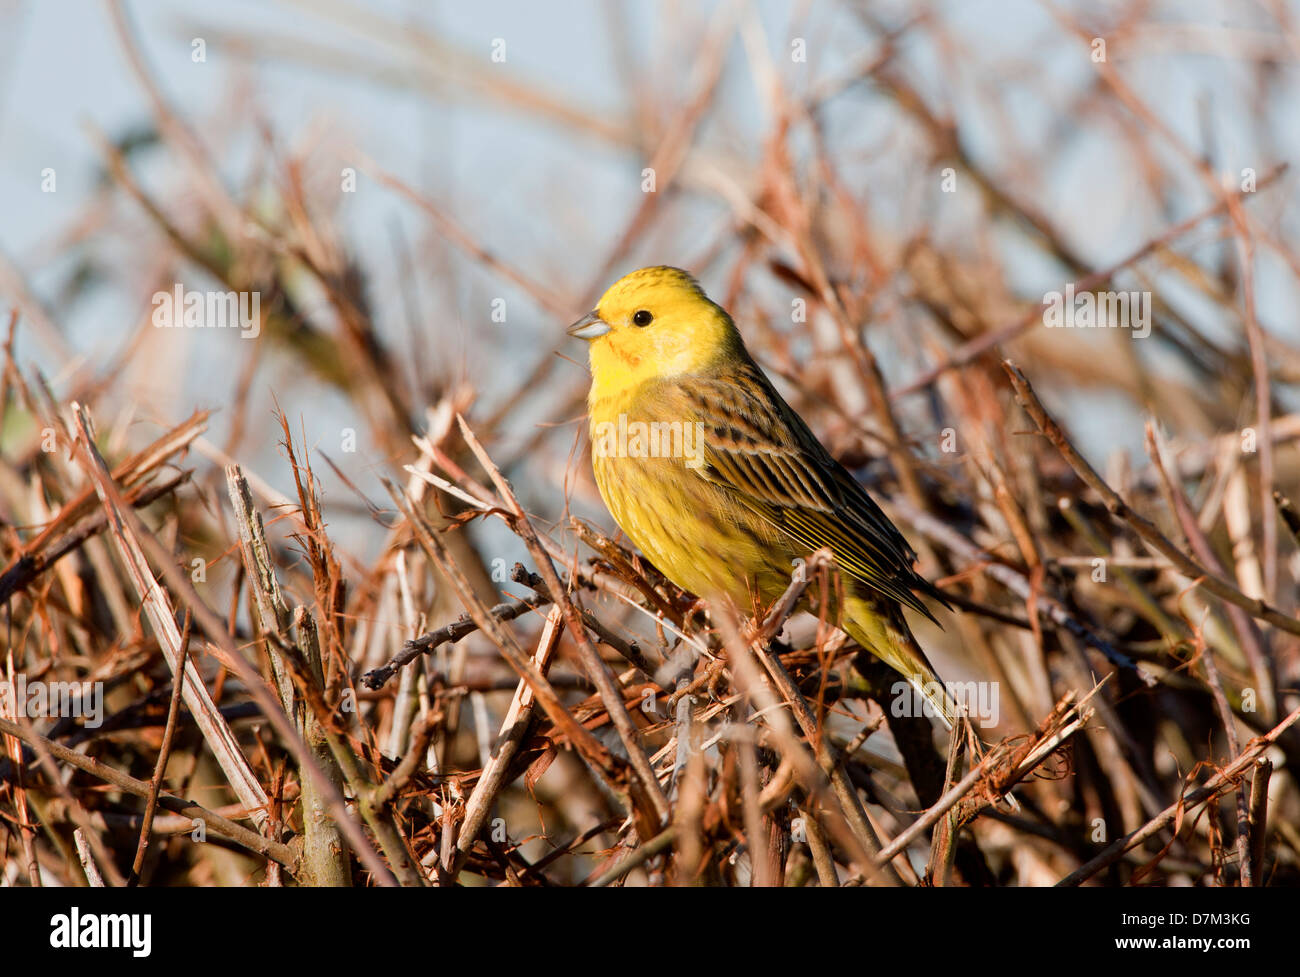 Yellowhammer Emberiza citrinella perched on hedgerow in country lane oxfordshire - Stock Image